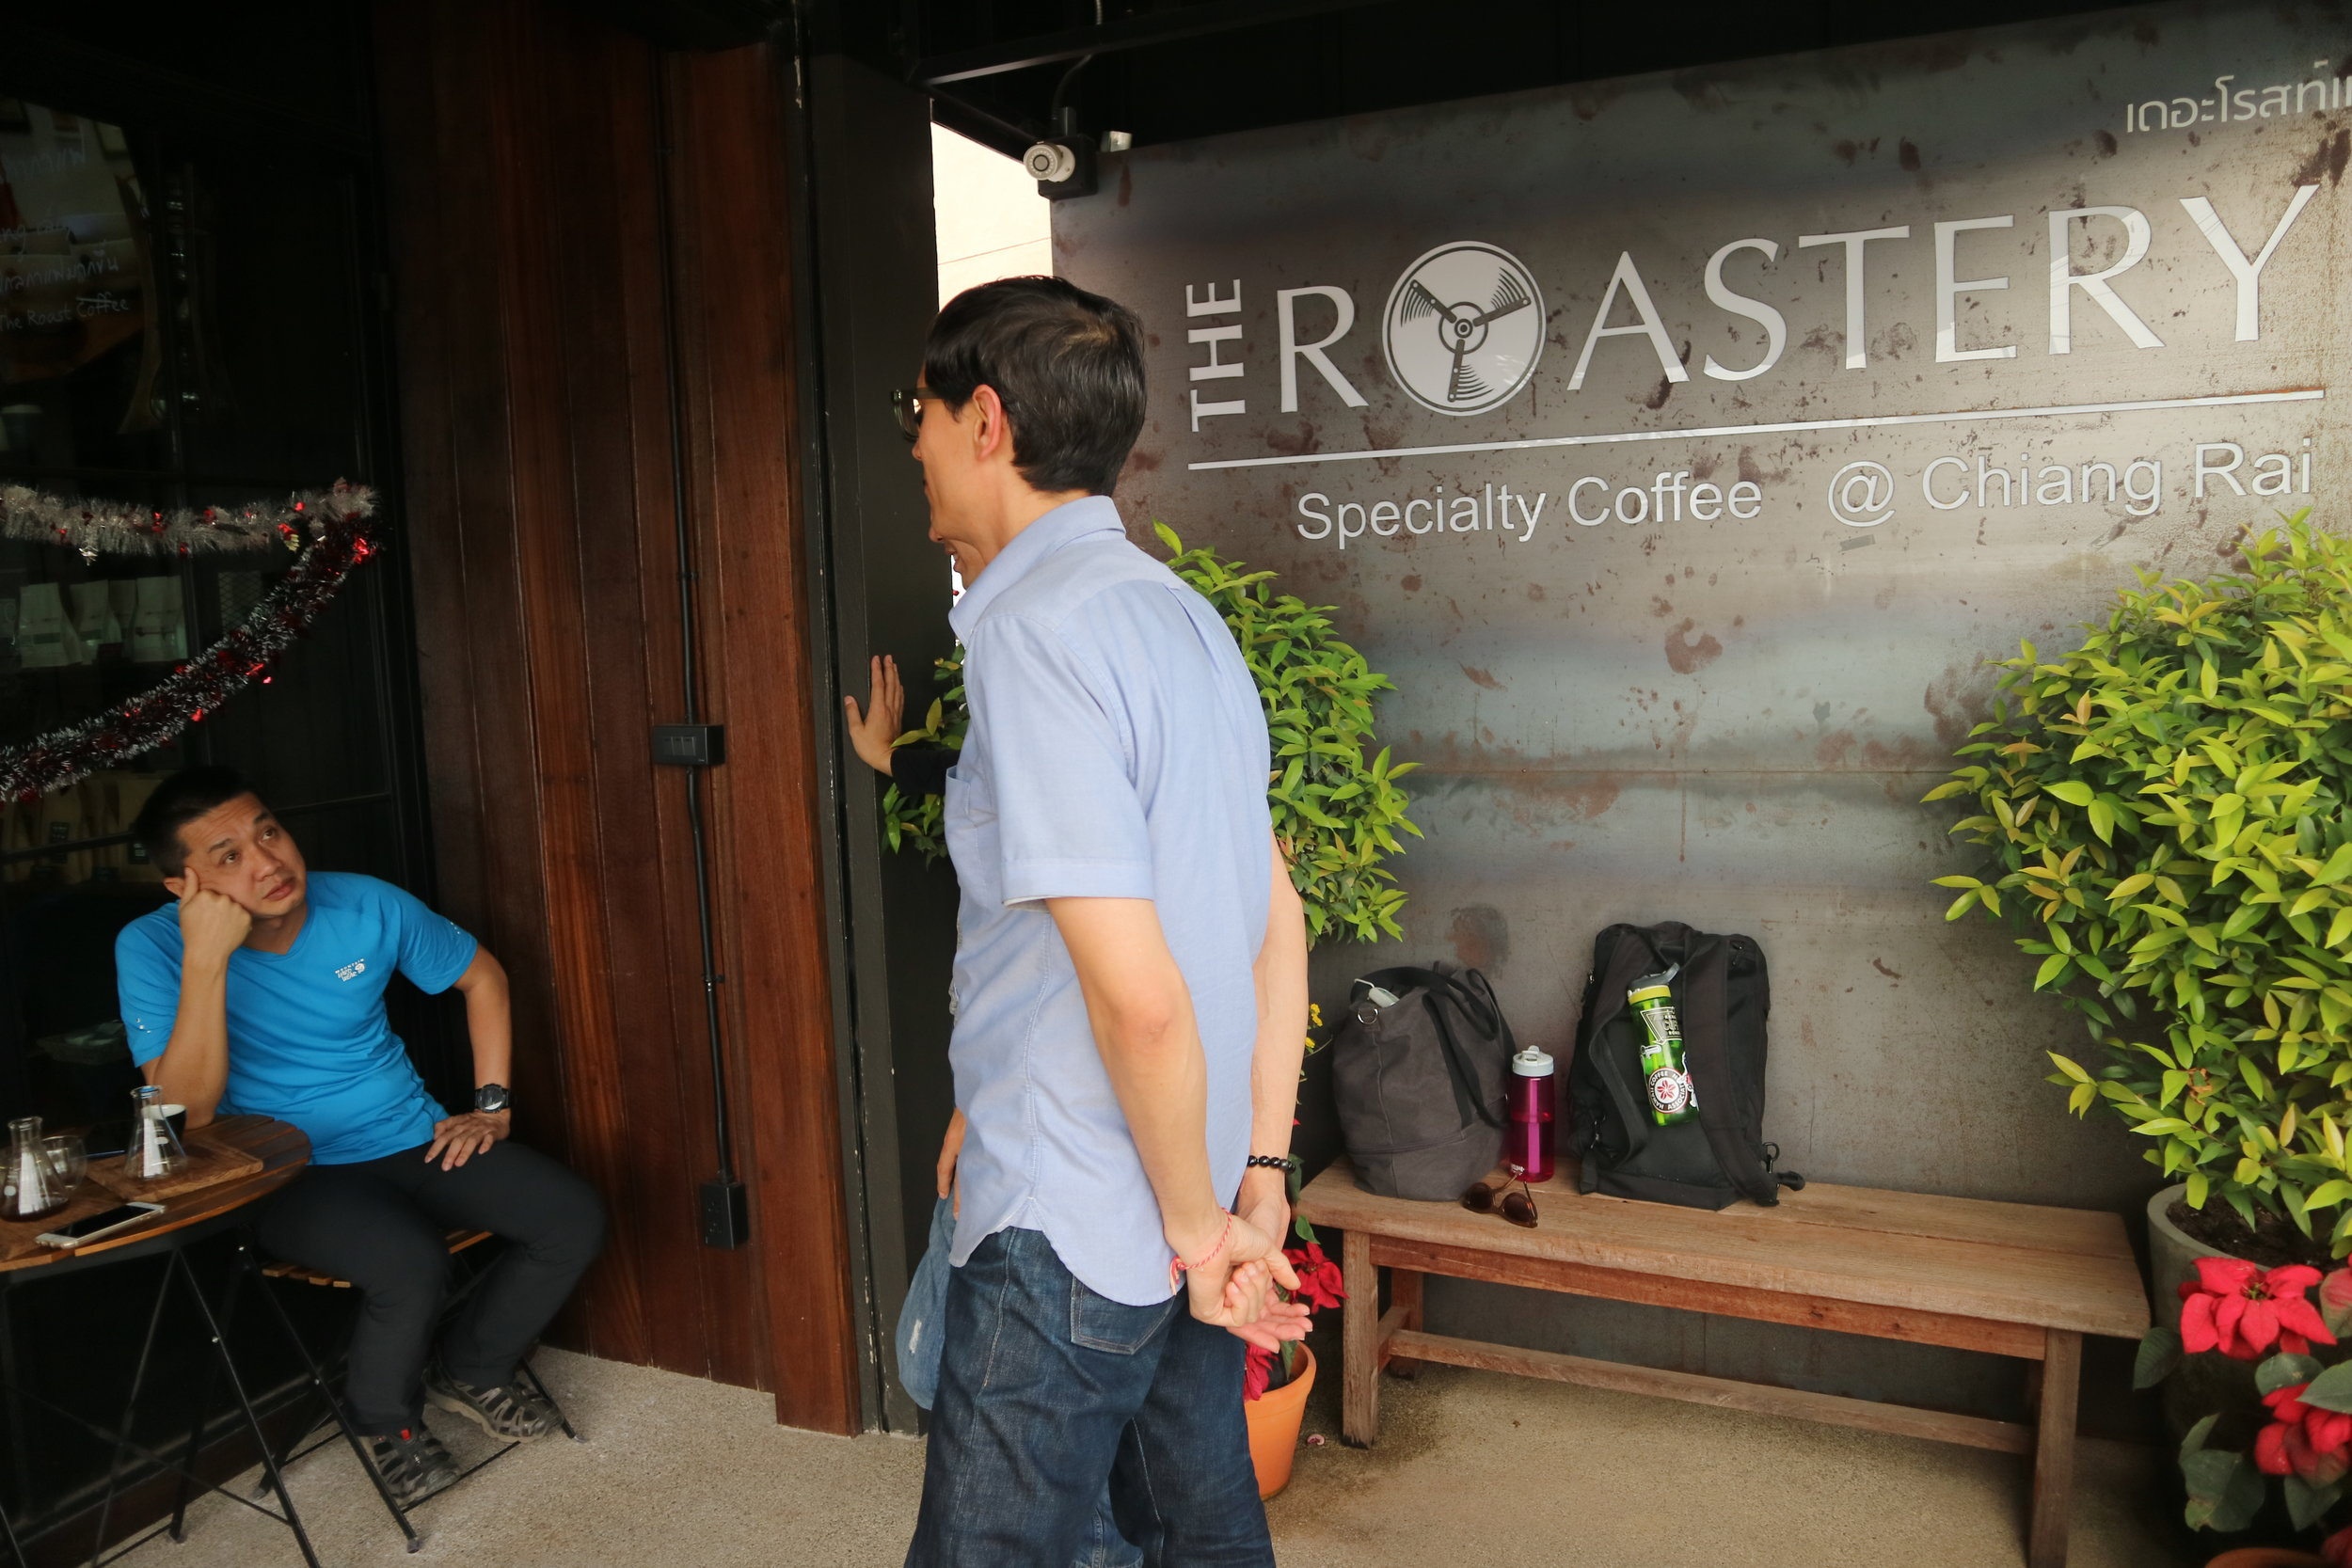 Yours truly arriving at The Roastery by Roj to a familiar face (Dung Nguyen of Saigon's The Workshop Specialty Coffee)